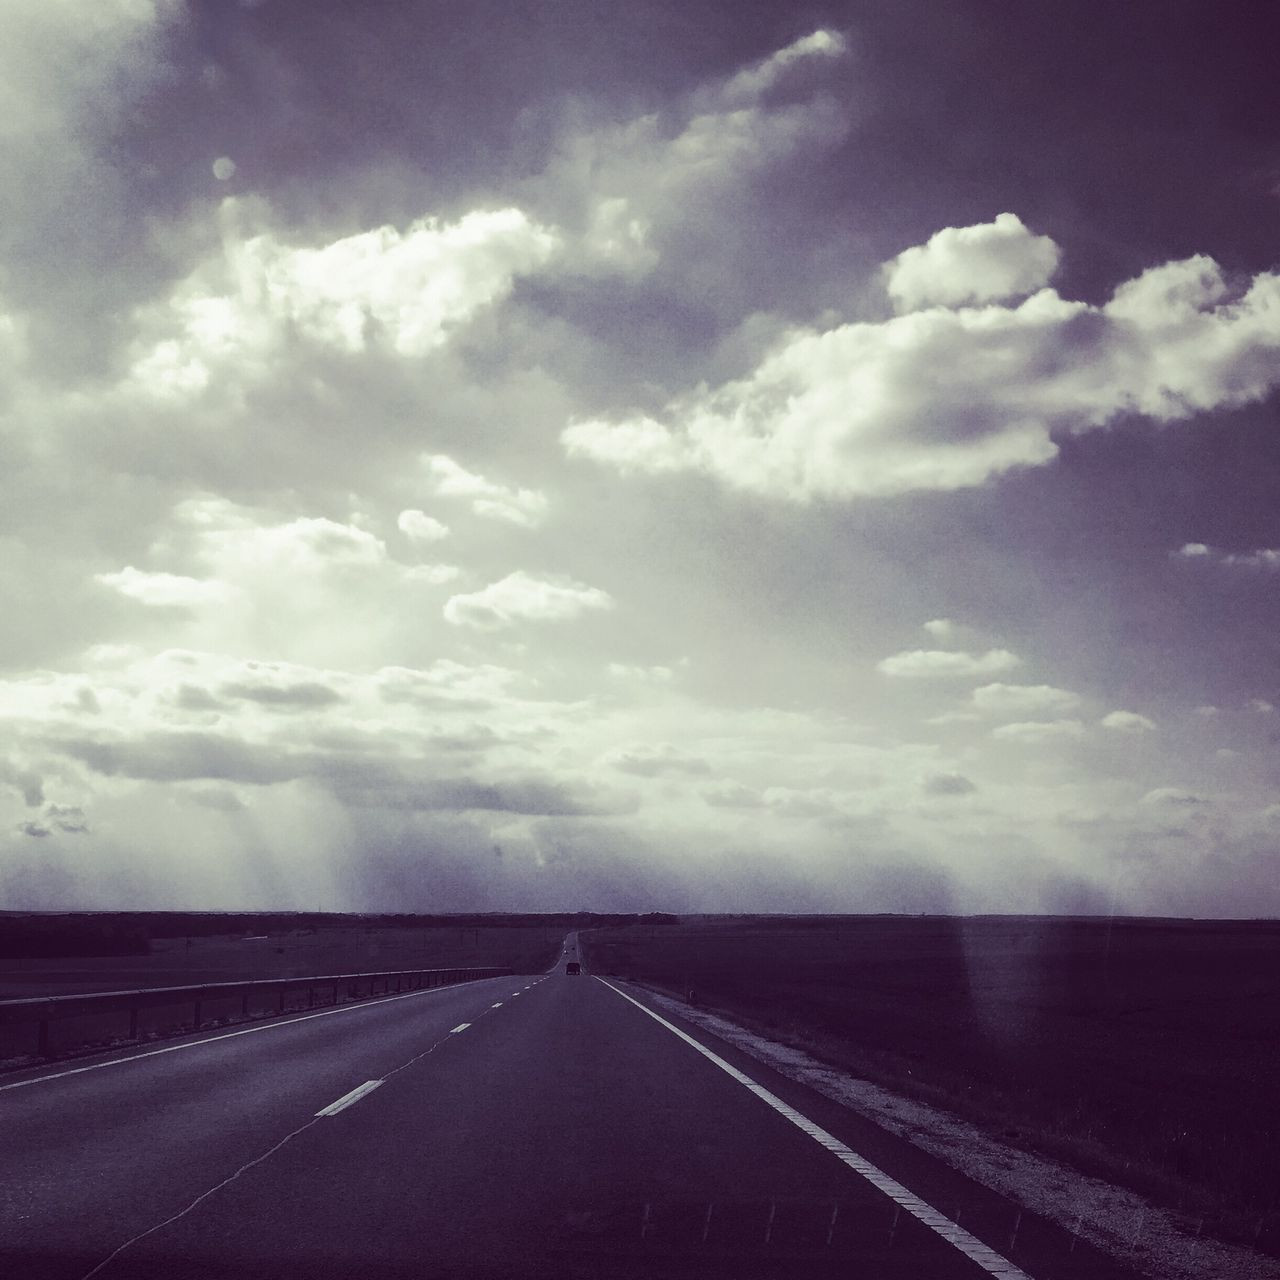 road, the way forward, diminishing perspective, sky, landscape, cloud - sky, transportation, outdoors, day, no people, tranquility, nature, scenics, beauty in nature